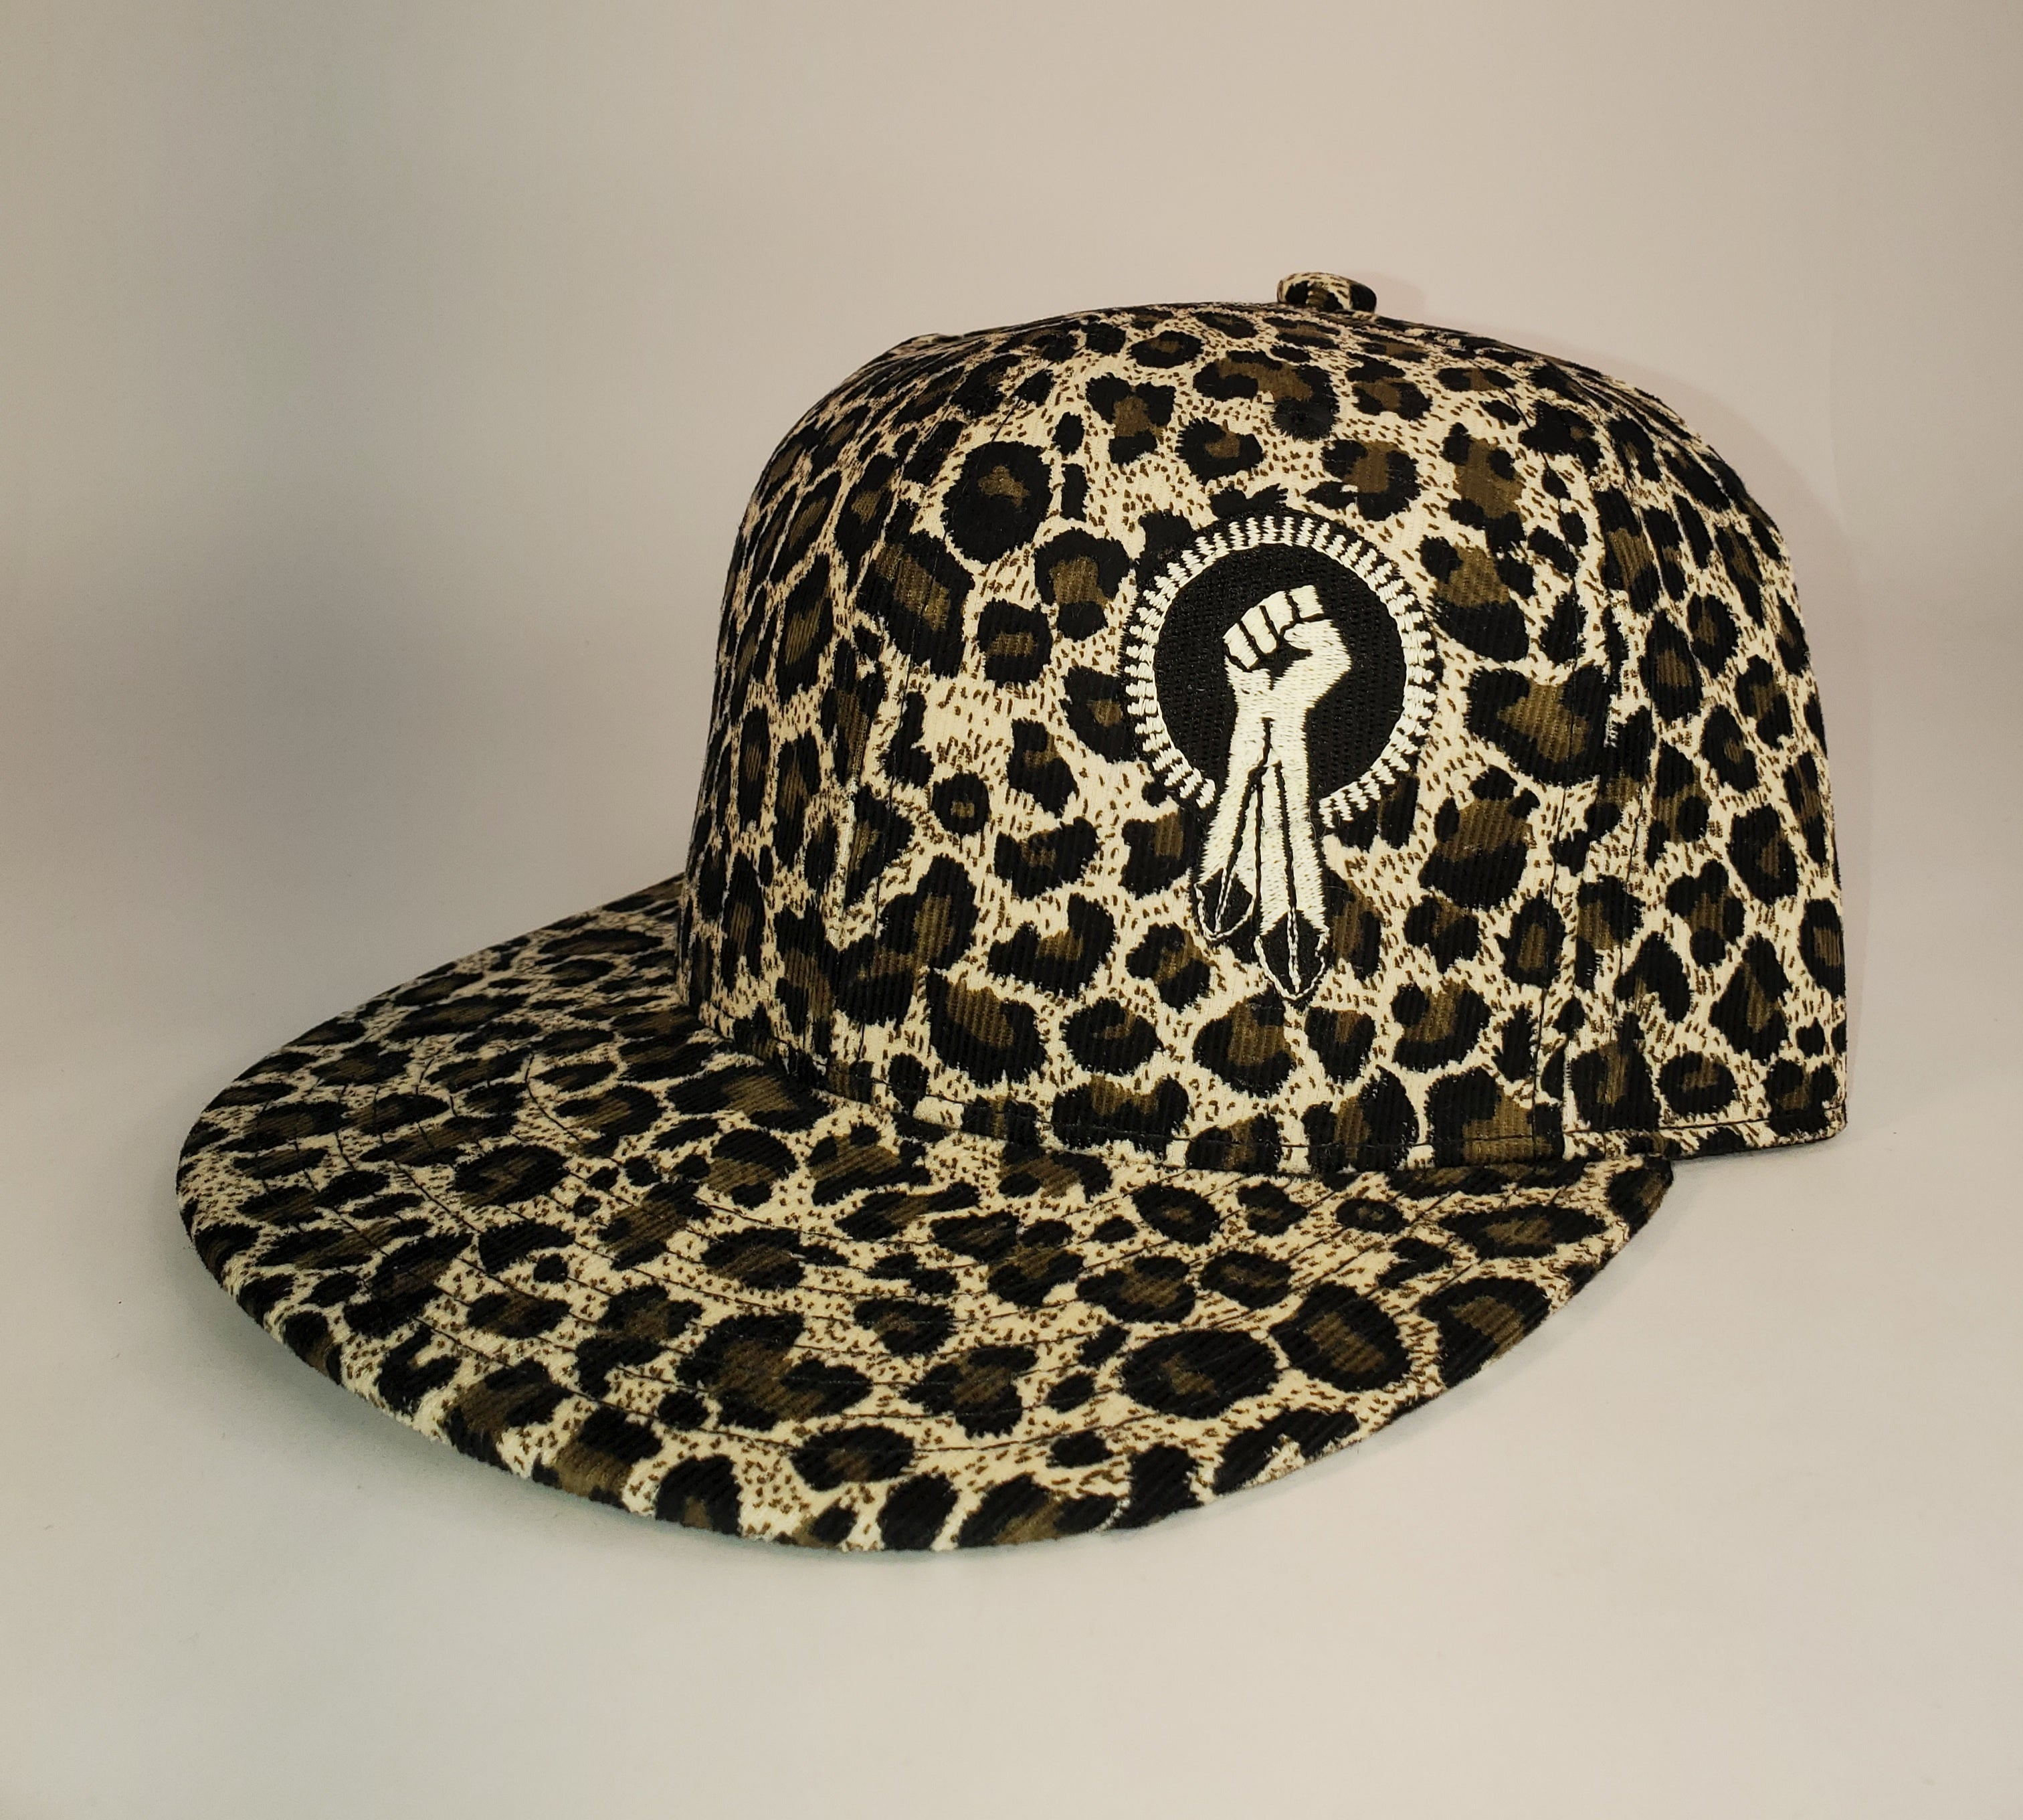 N8V MOVEMENT cap embroidered glow in the dark leopard snapback